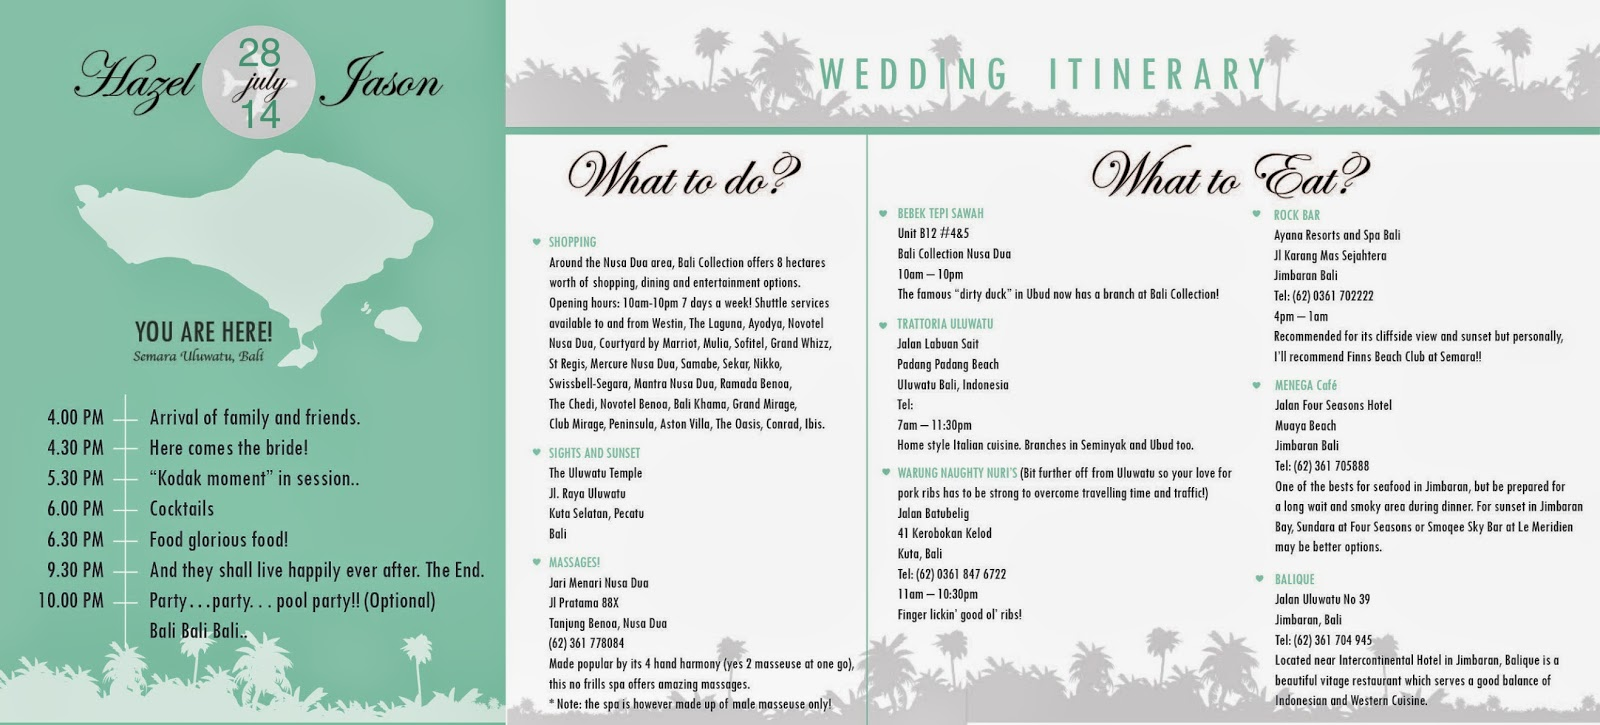 E-Itinerary Design, a Wedding at Semara Uluwatu Cliff, Bali, Indonesia